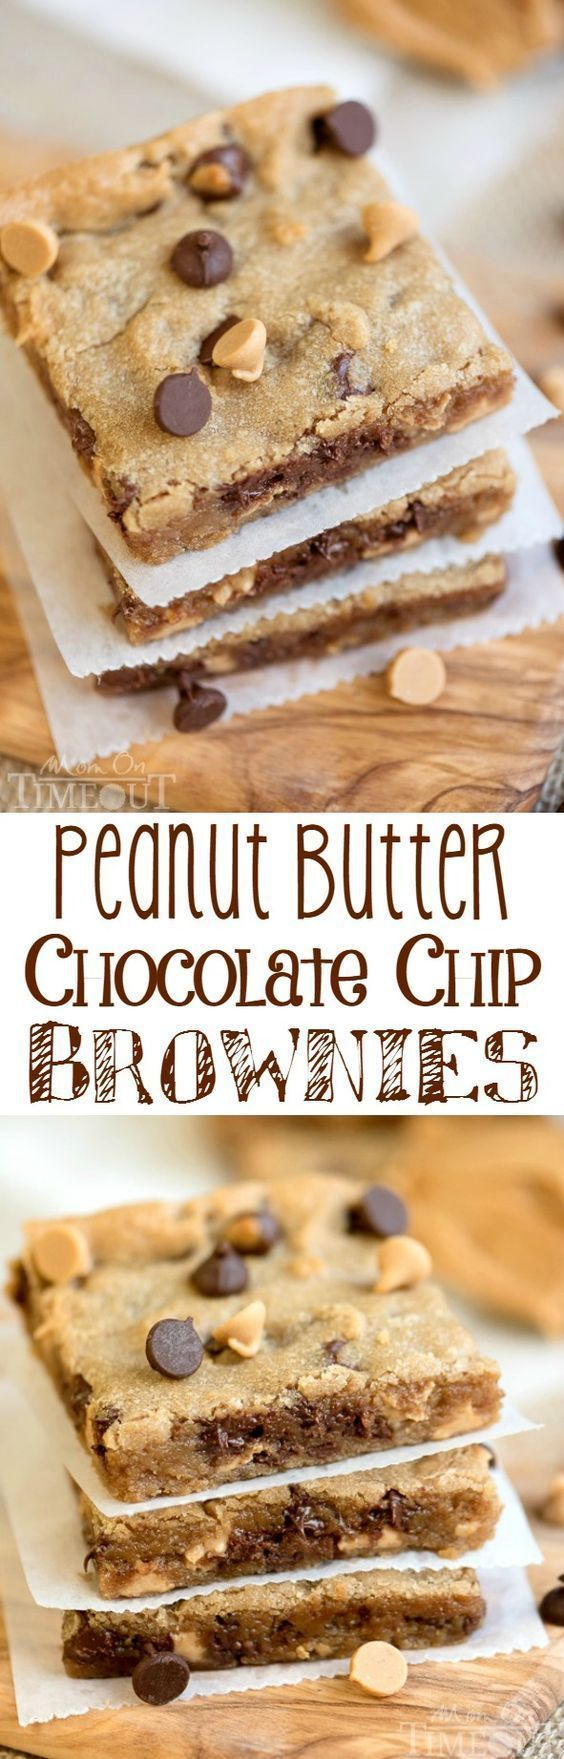 Perfectly moist, decadent, and fudgy, these sinful Peanut Butter Chocolate Chip Brownies will redefine your love for peanut butter. The perfect easy dessert recipe for peanut butter and chocolate lovers!| http://MomOnTimeout.com